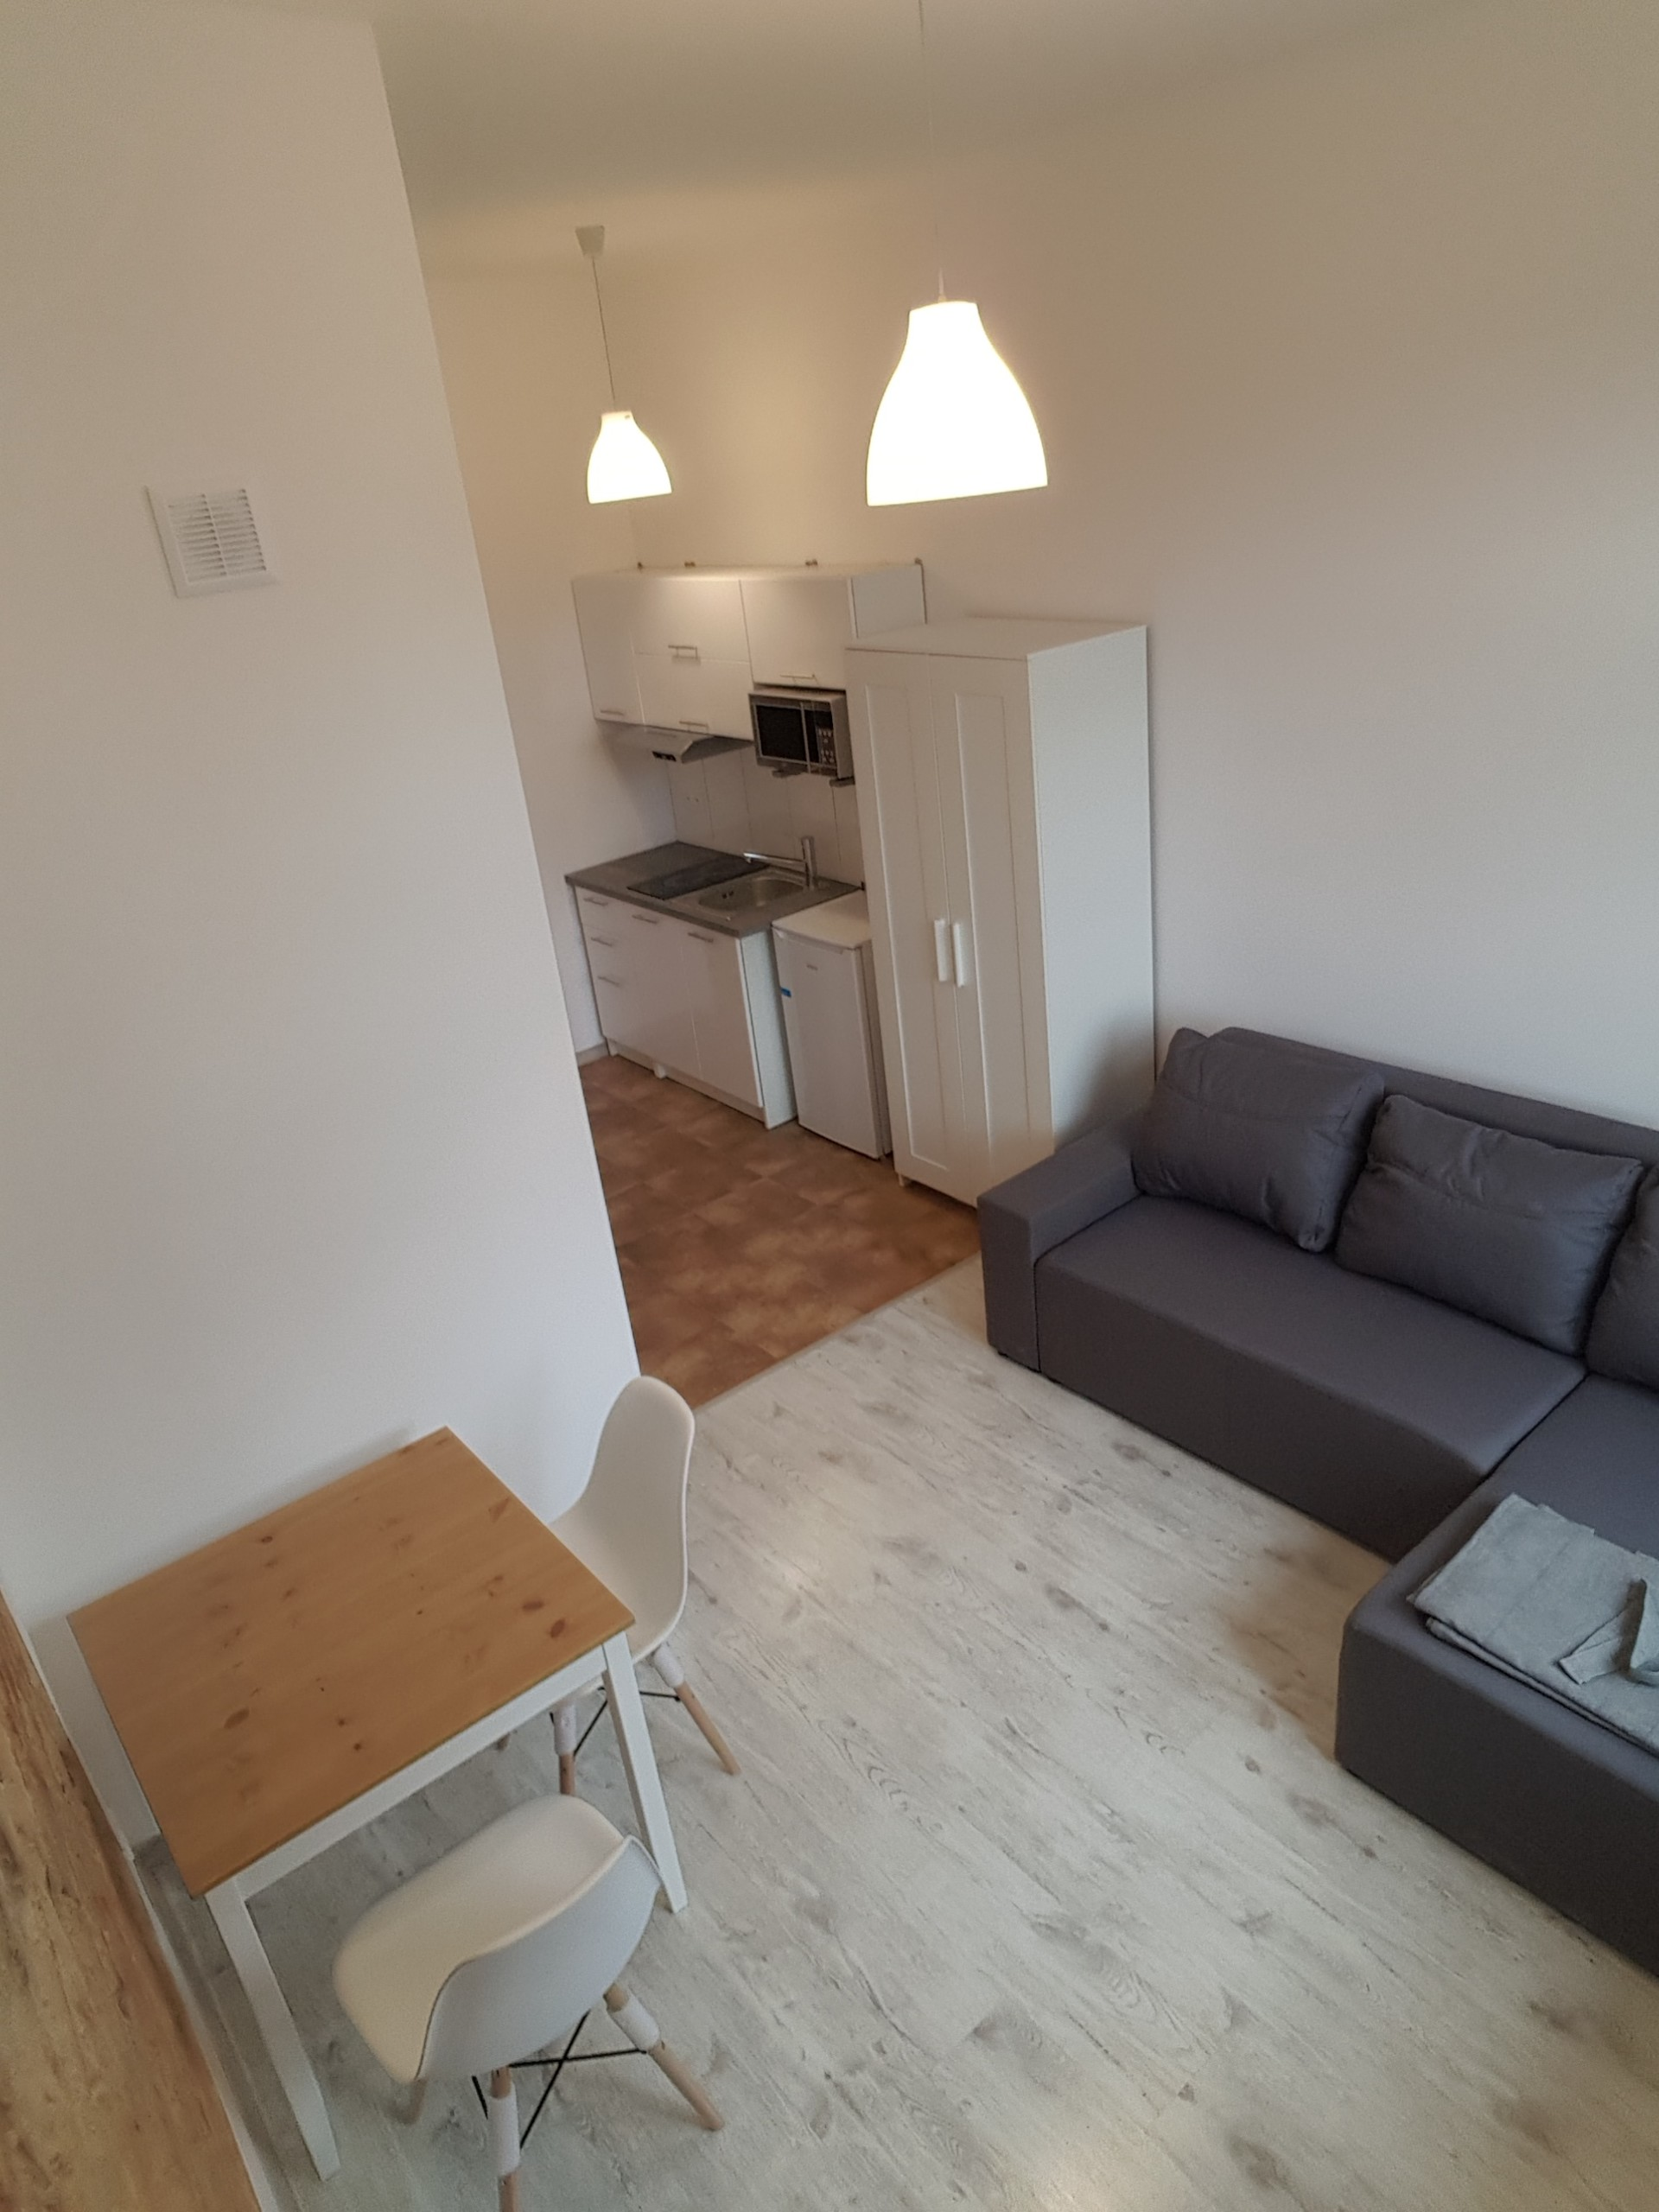 Studio for rent in Poznan with storage area